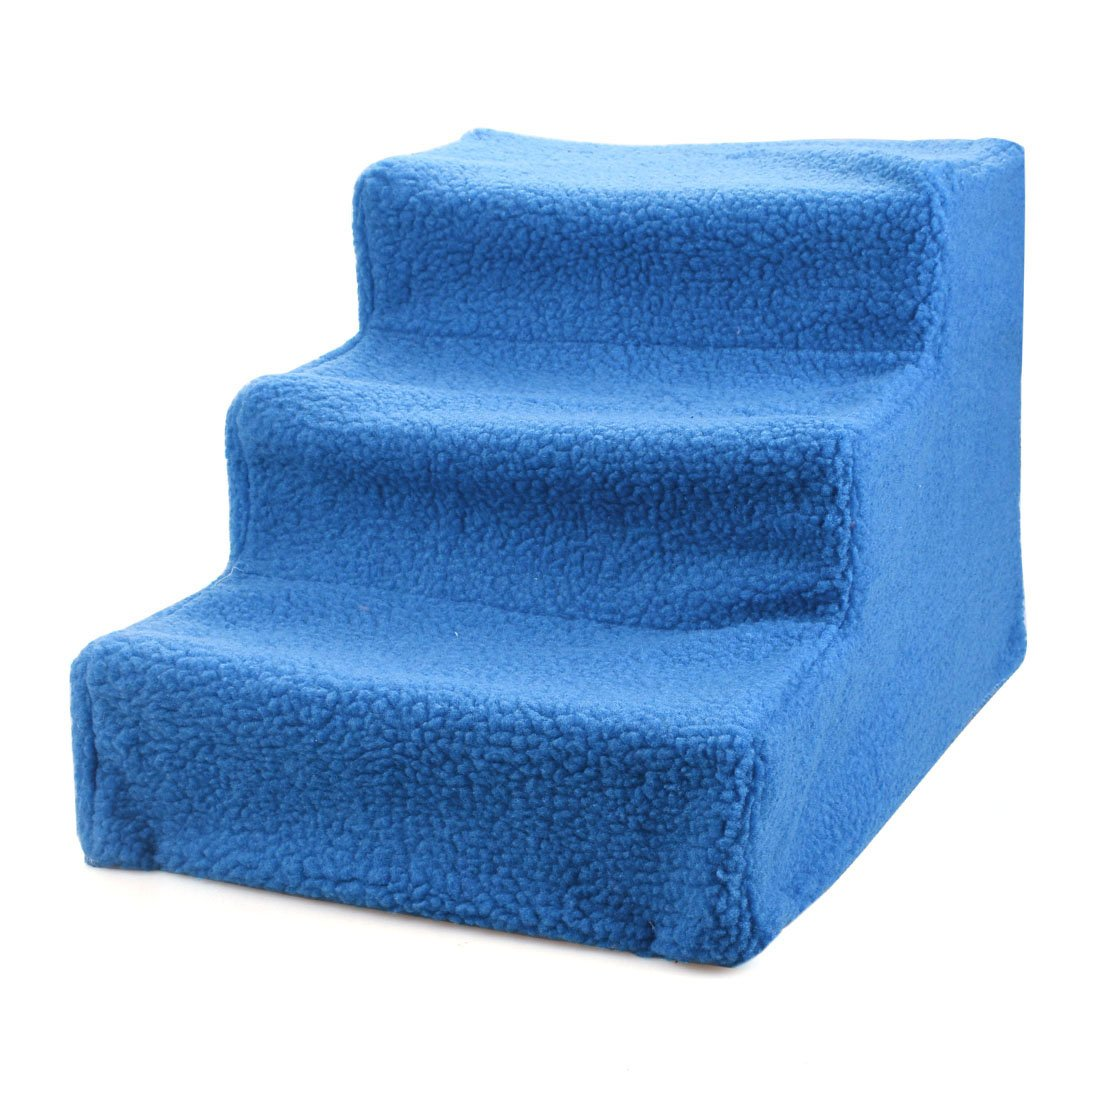 bluee Enerhu 3 Steps Pet Stairs Dogs Ladder Cats Ramp Soft Sponge up to 66lb Portable with Removable Washable Cover bluee